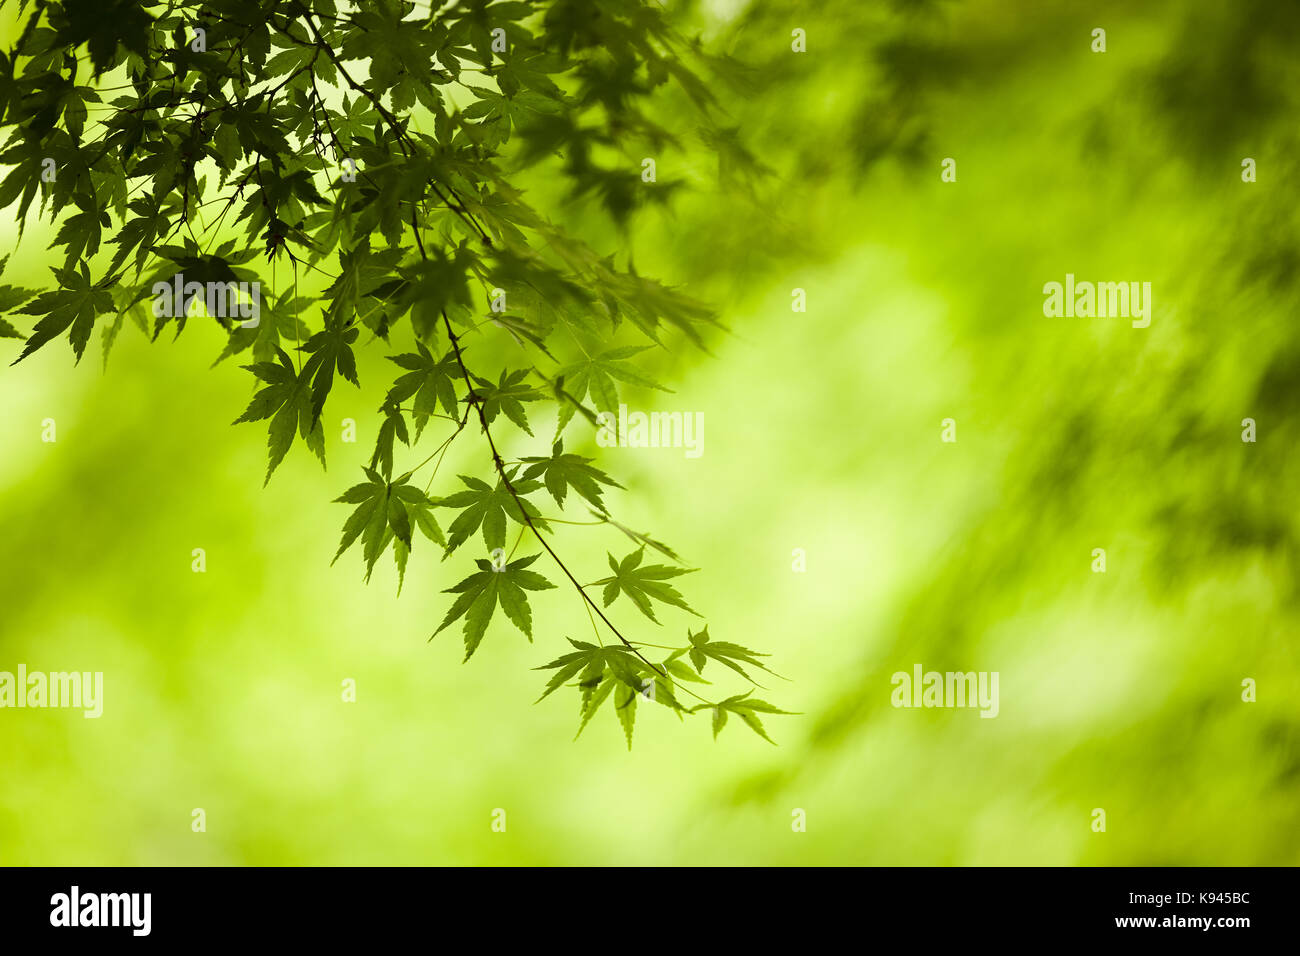 Branches Of A Japanese Maple Tree With Green Leaves Outline Of